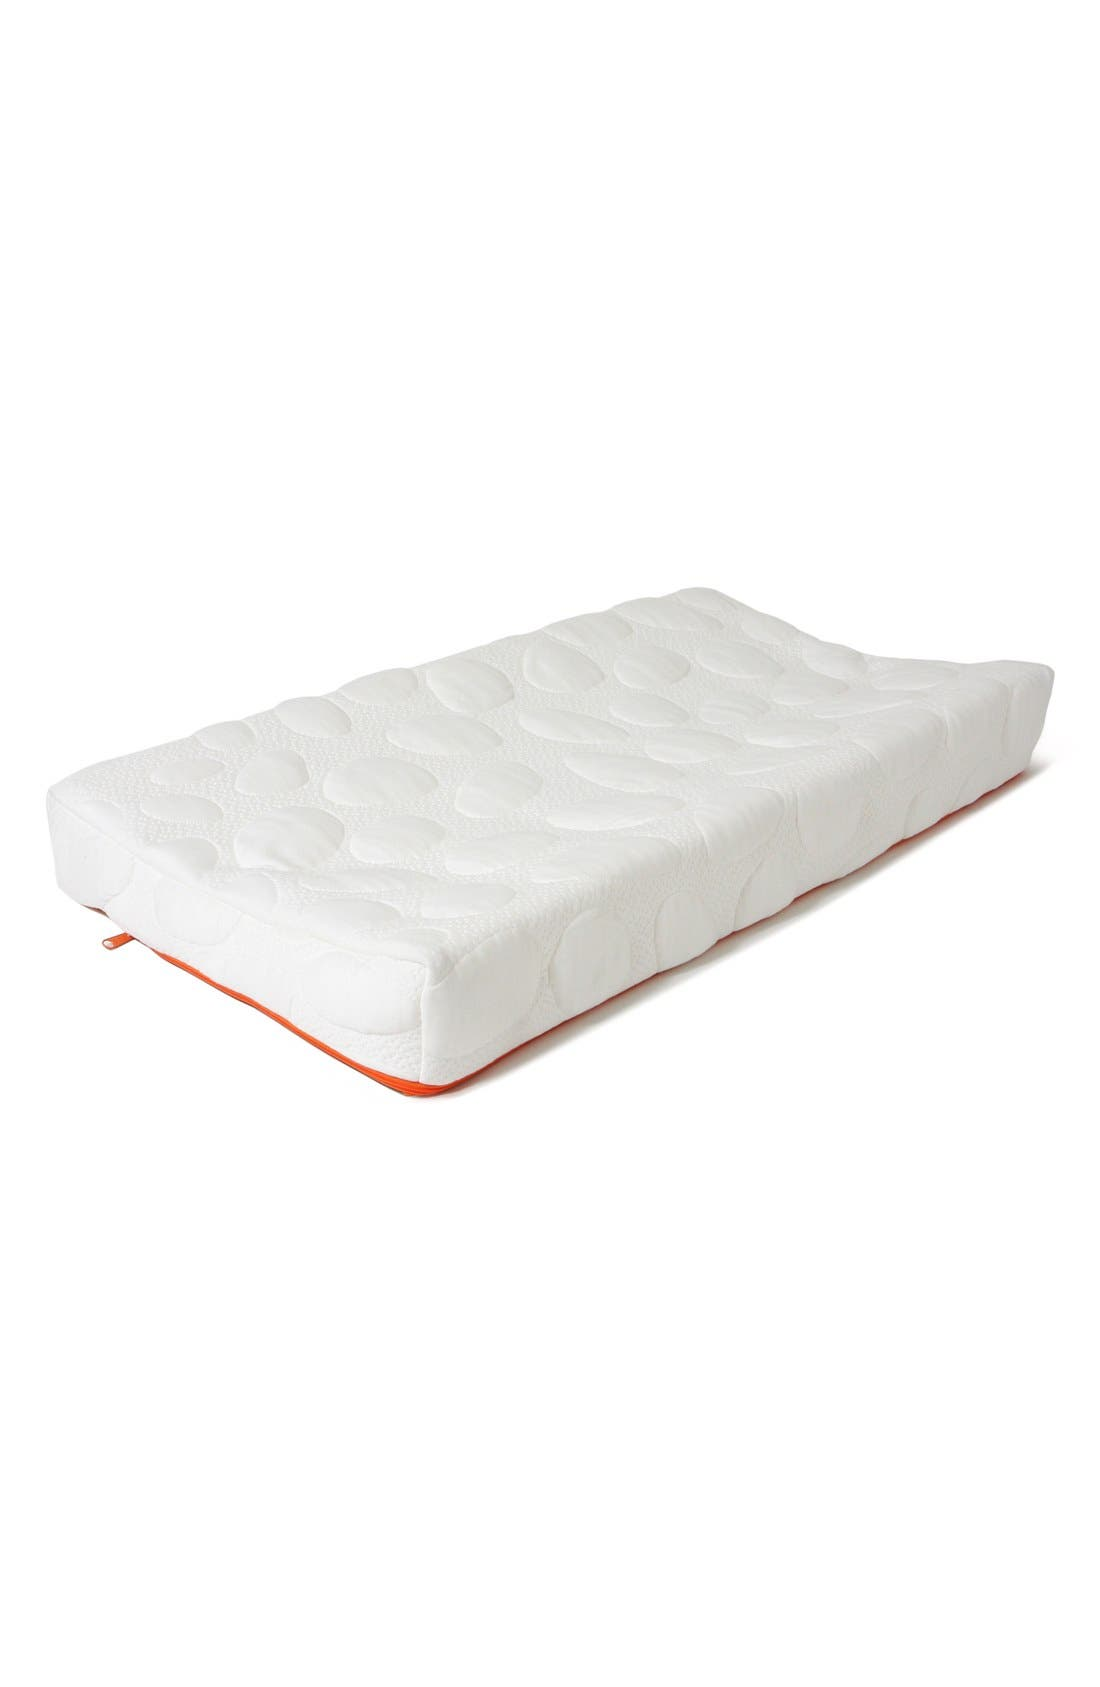 Nook Sleep Systems 'Pebble' Changing Pad